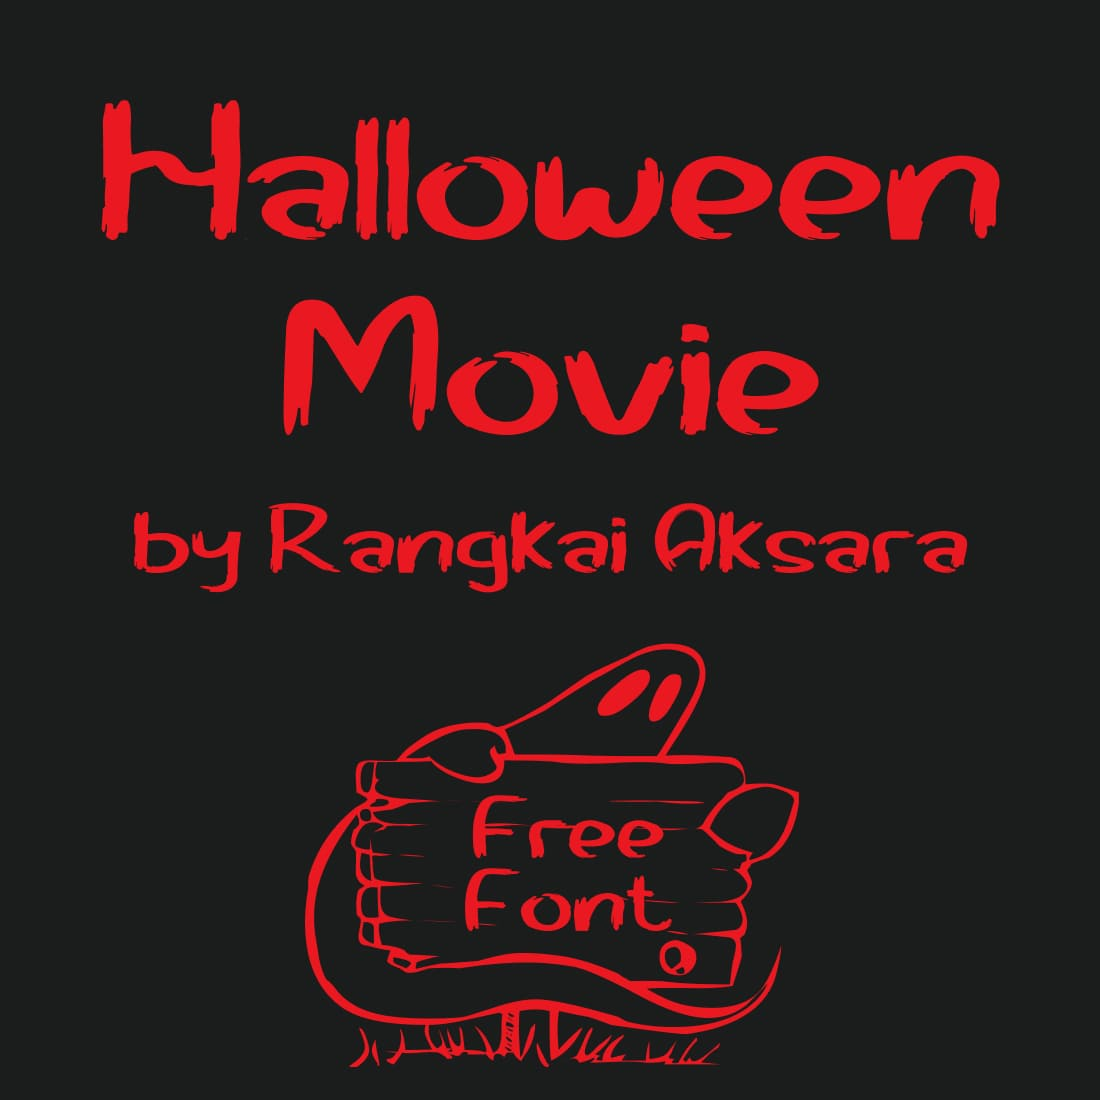 Halloween movie font free Red Cover Image by MasterBundles.